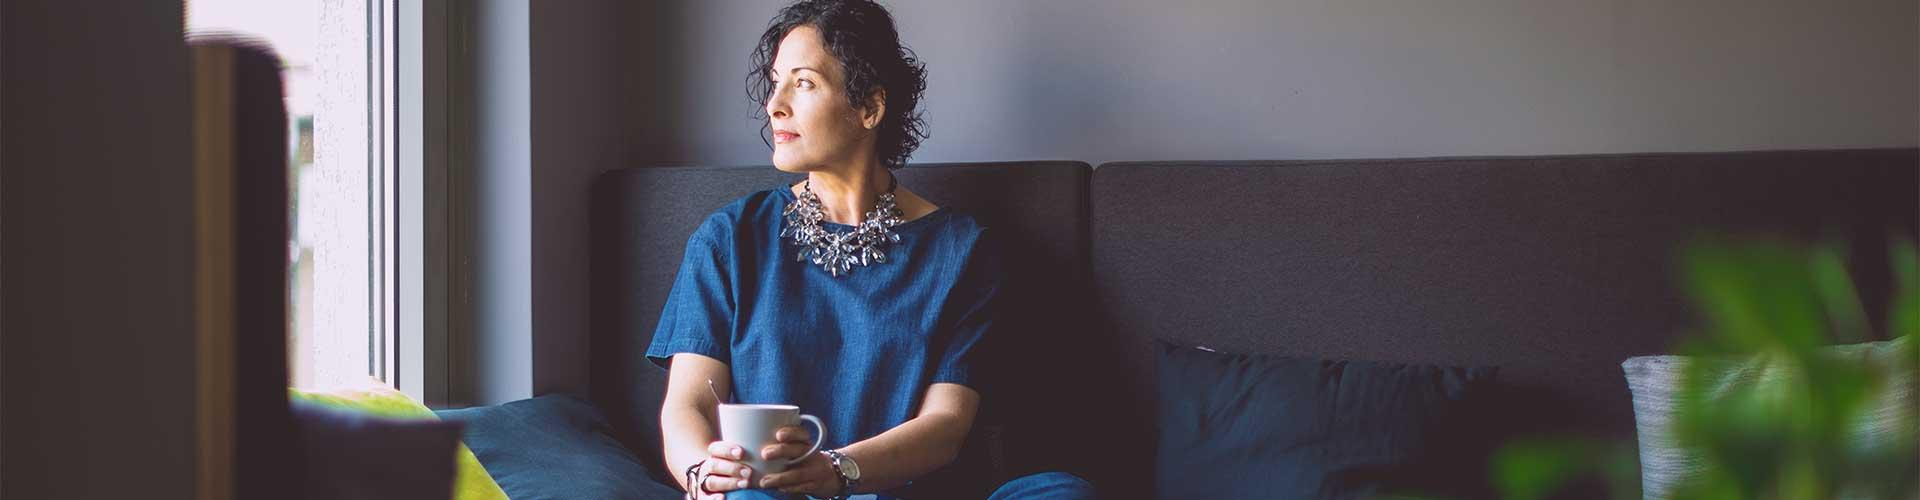 Stock image of woman sitting on couch looking out window